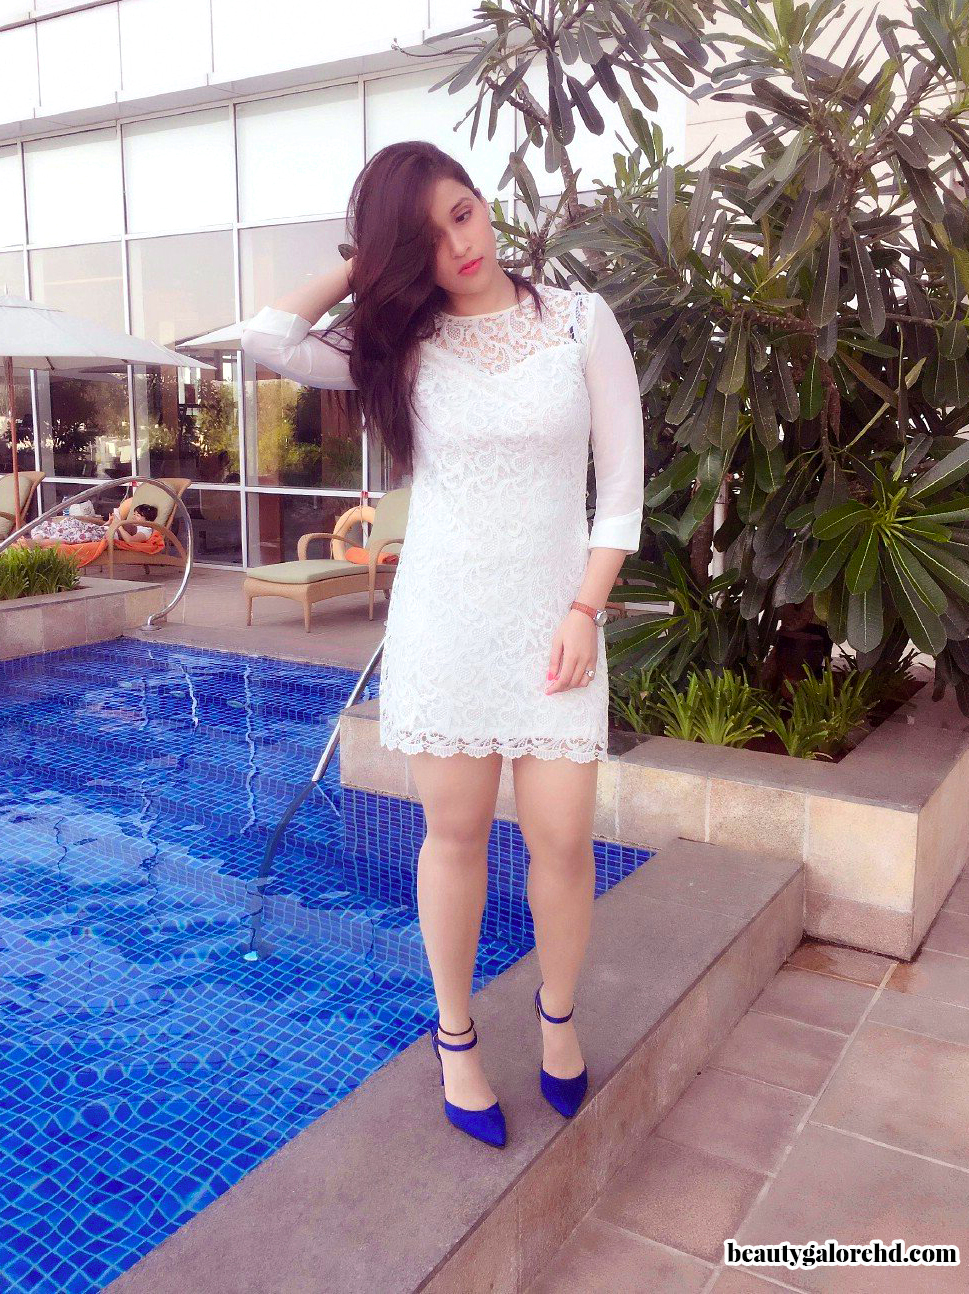 Mannara Chopra Spotted Hot In White Lace Dress In Hotel Swimming Pool